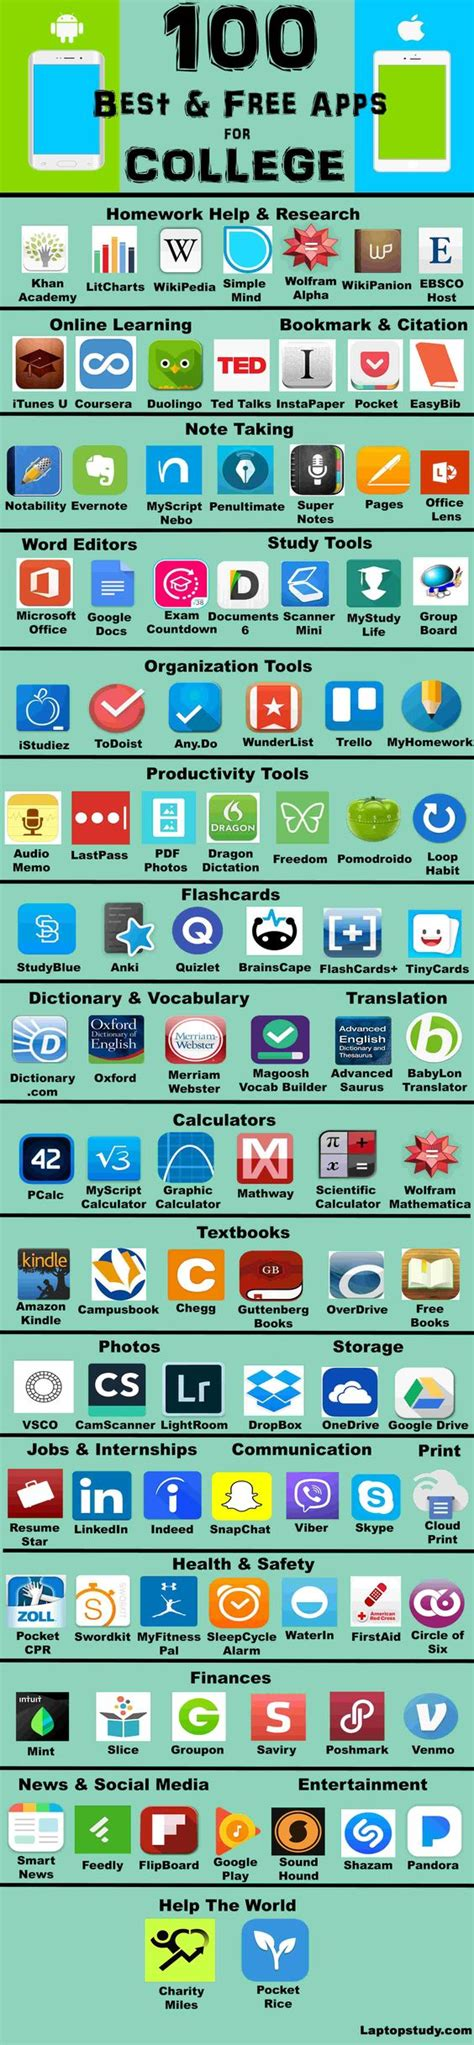 8 colleges where students attend for free best college 100 best apps for college students for free laptop study